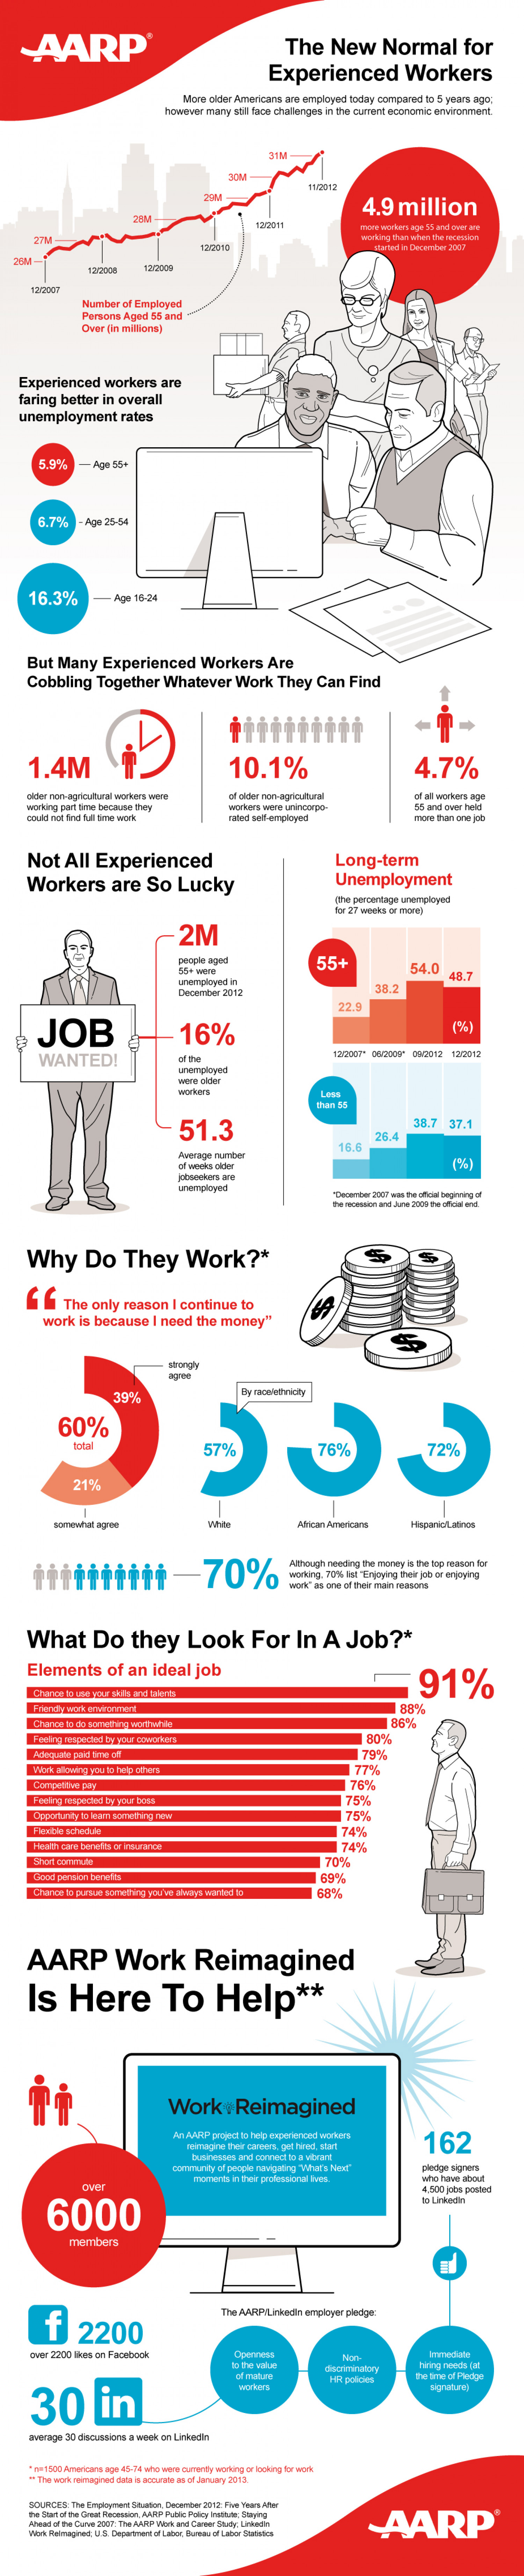 The New Normal for Experienced Workers Infographic